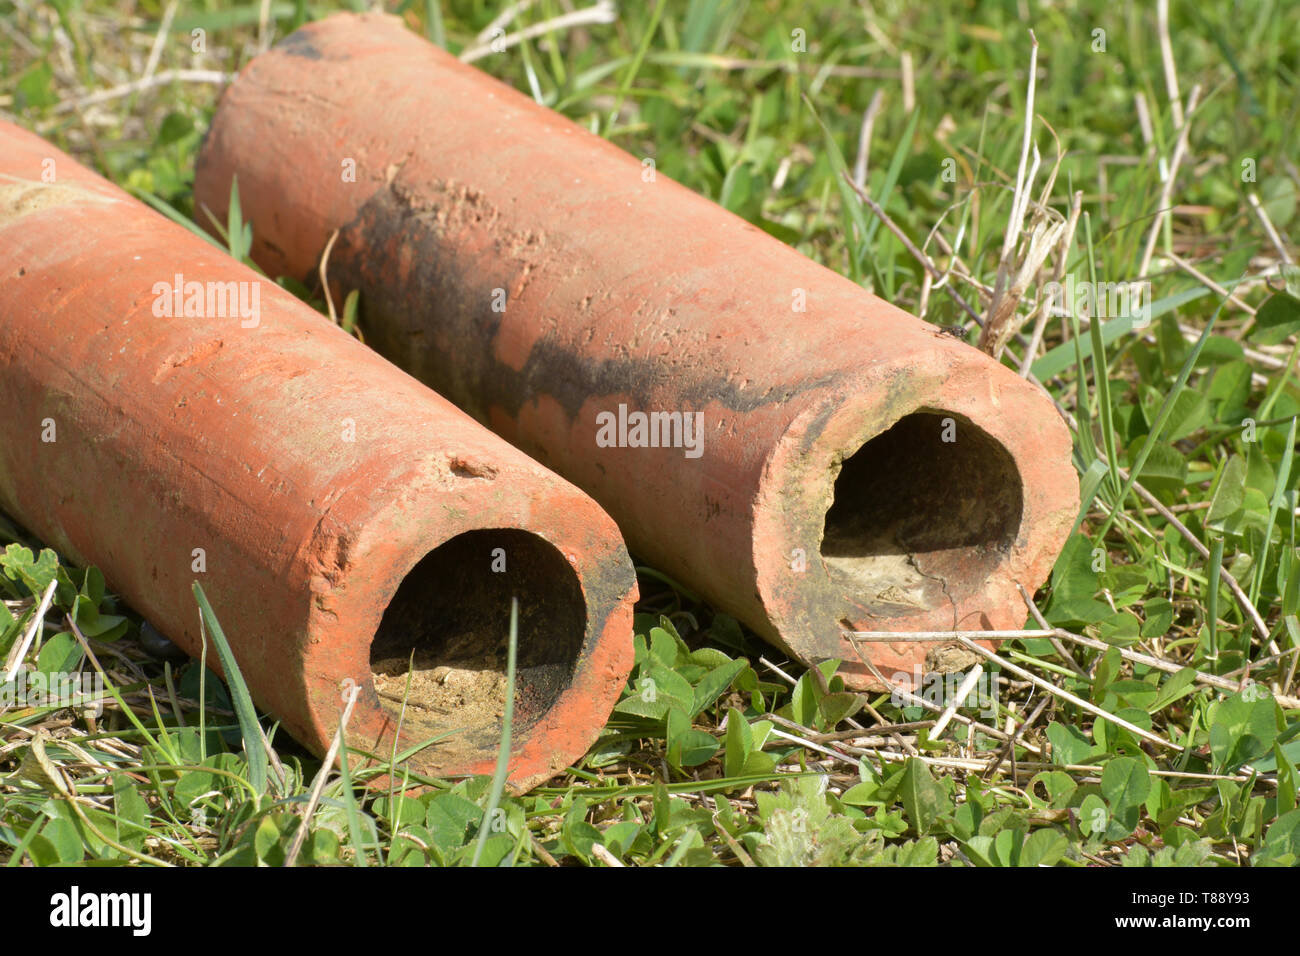 Clay Pipe Stock Photos & Clay Pipe Stock Images - Alamy